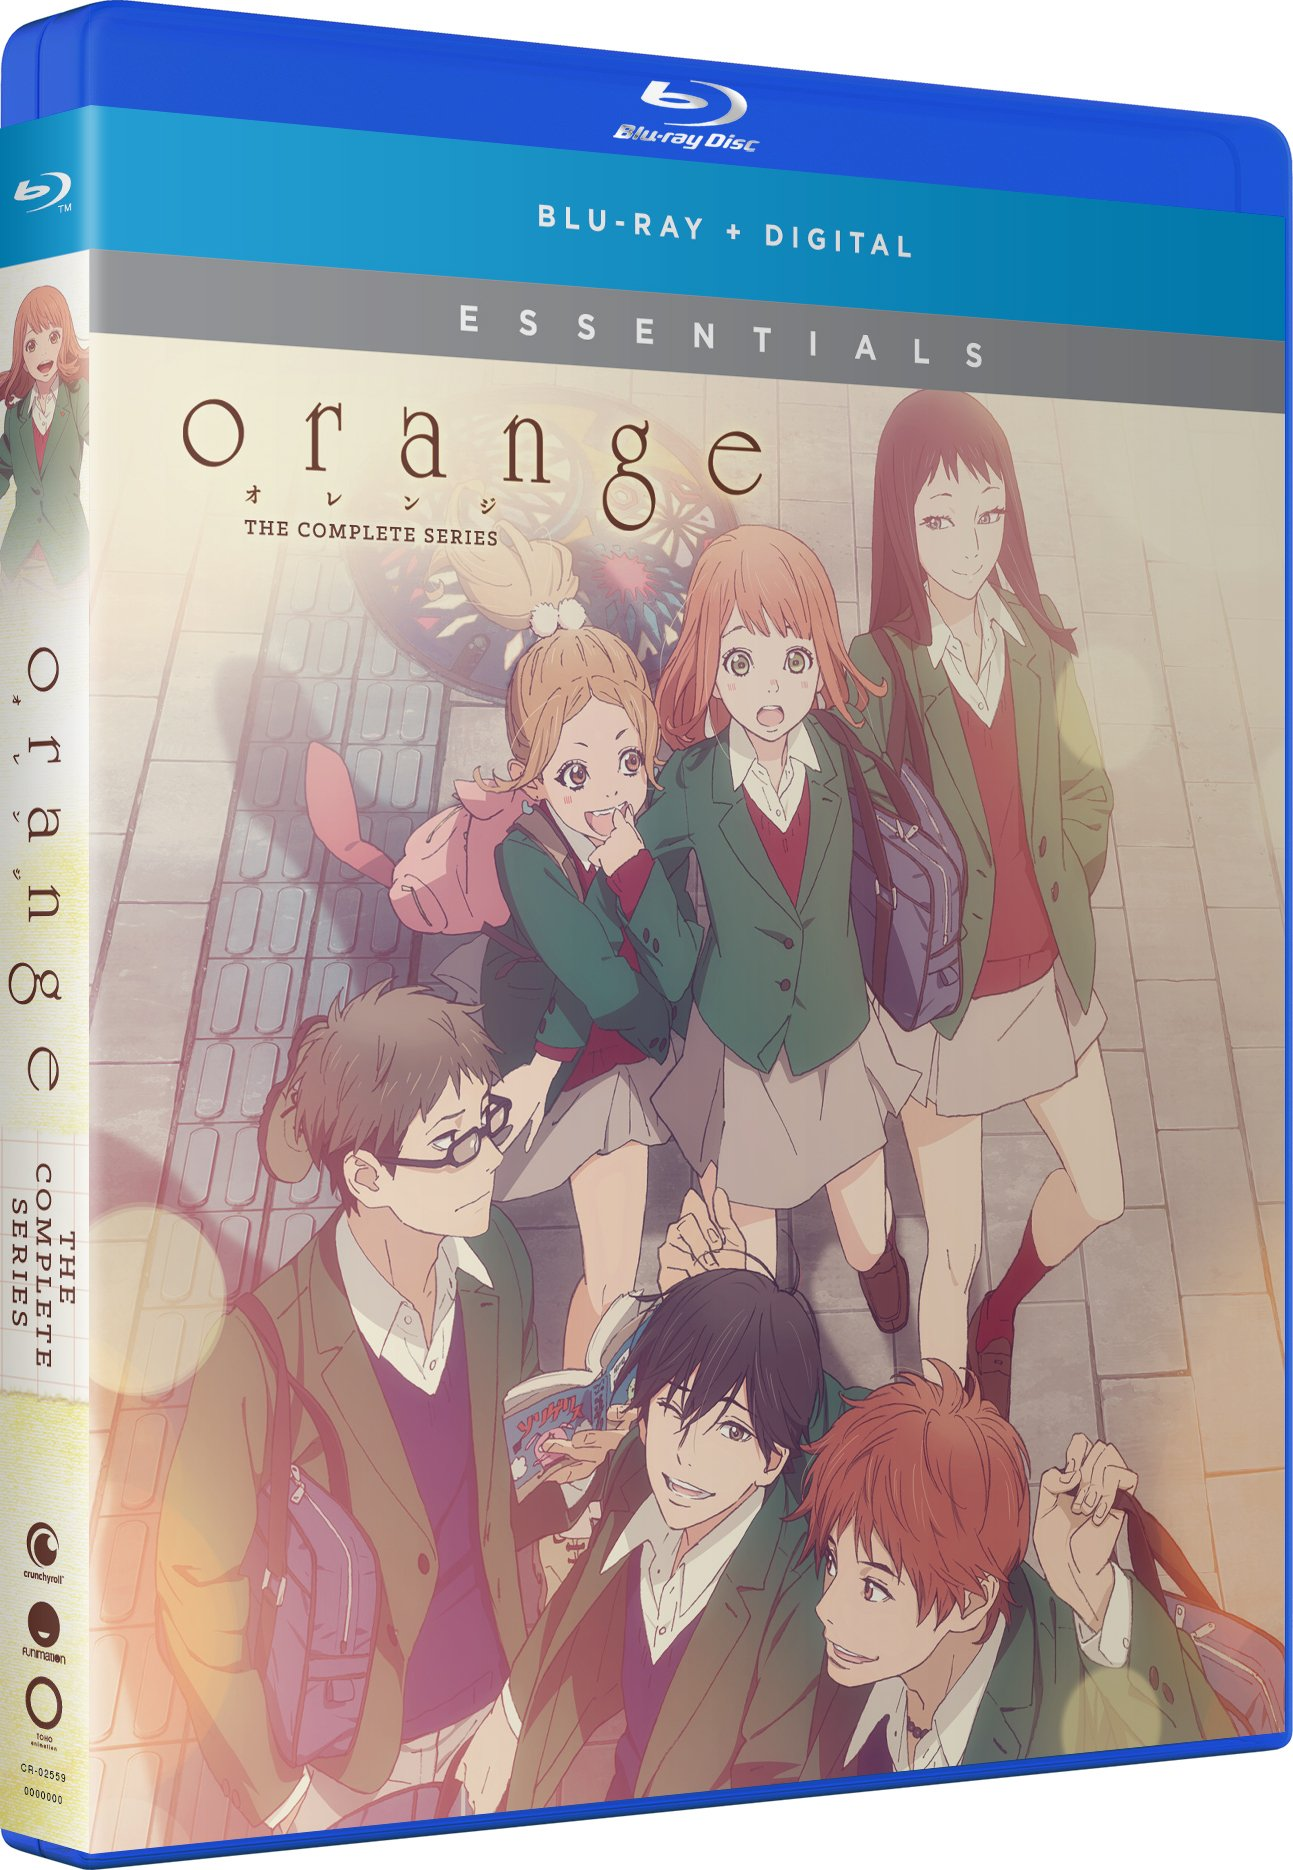 Blu-ray : Orange: The Complete Series - Essentials (Uncut, Subtitled, Slipsleeve Packaging, Snap Case, 2 Pack)